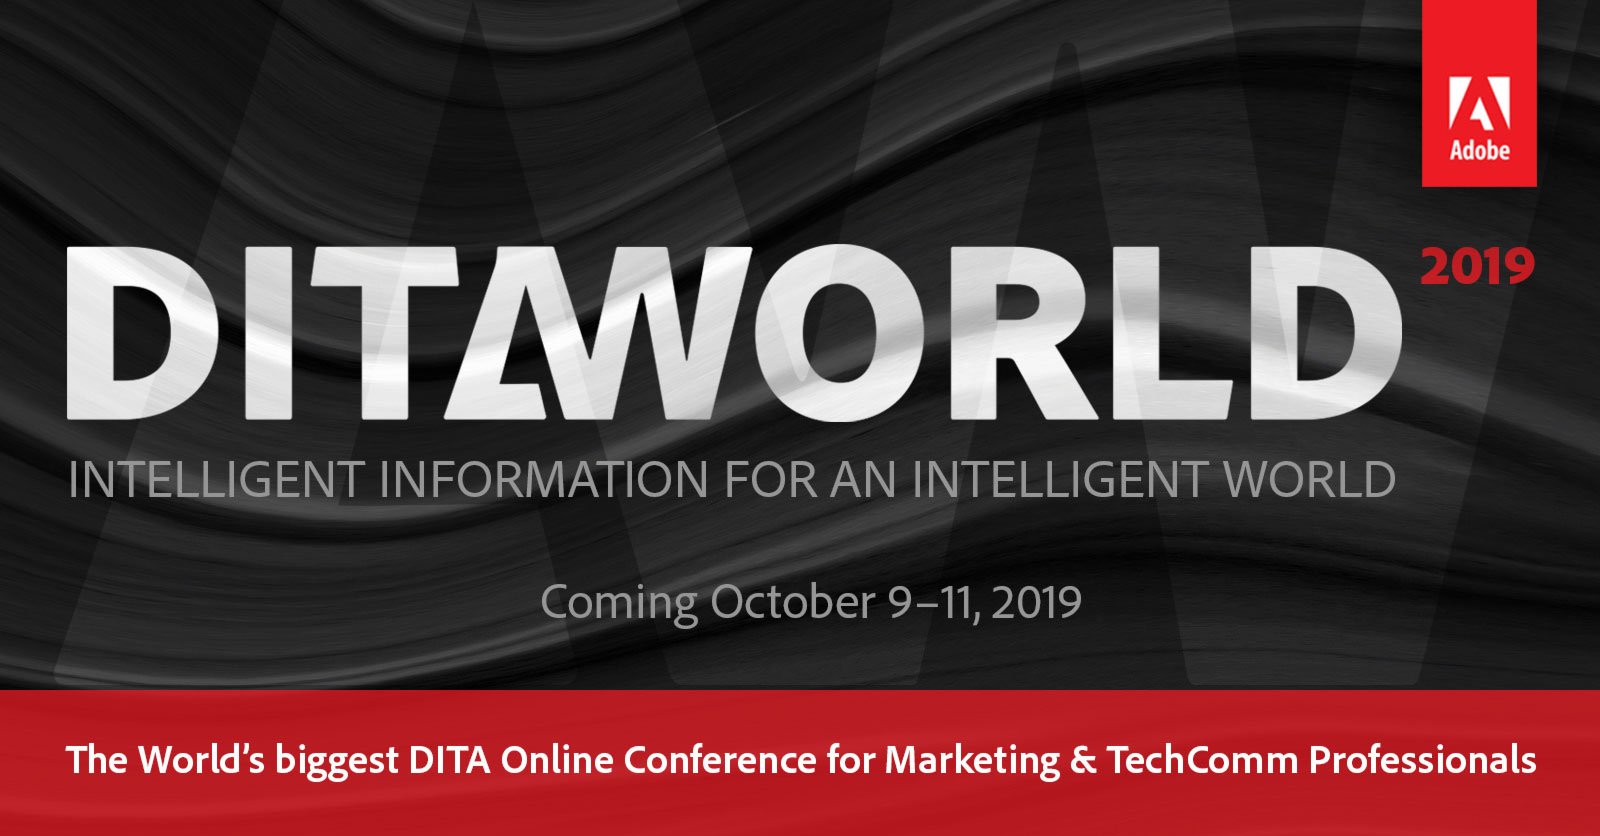 Home - Adobe DITAWORLD 2019 – The DITA Online Conference